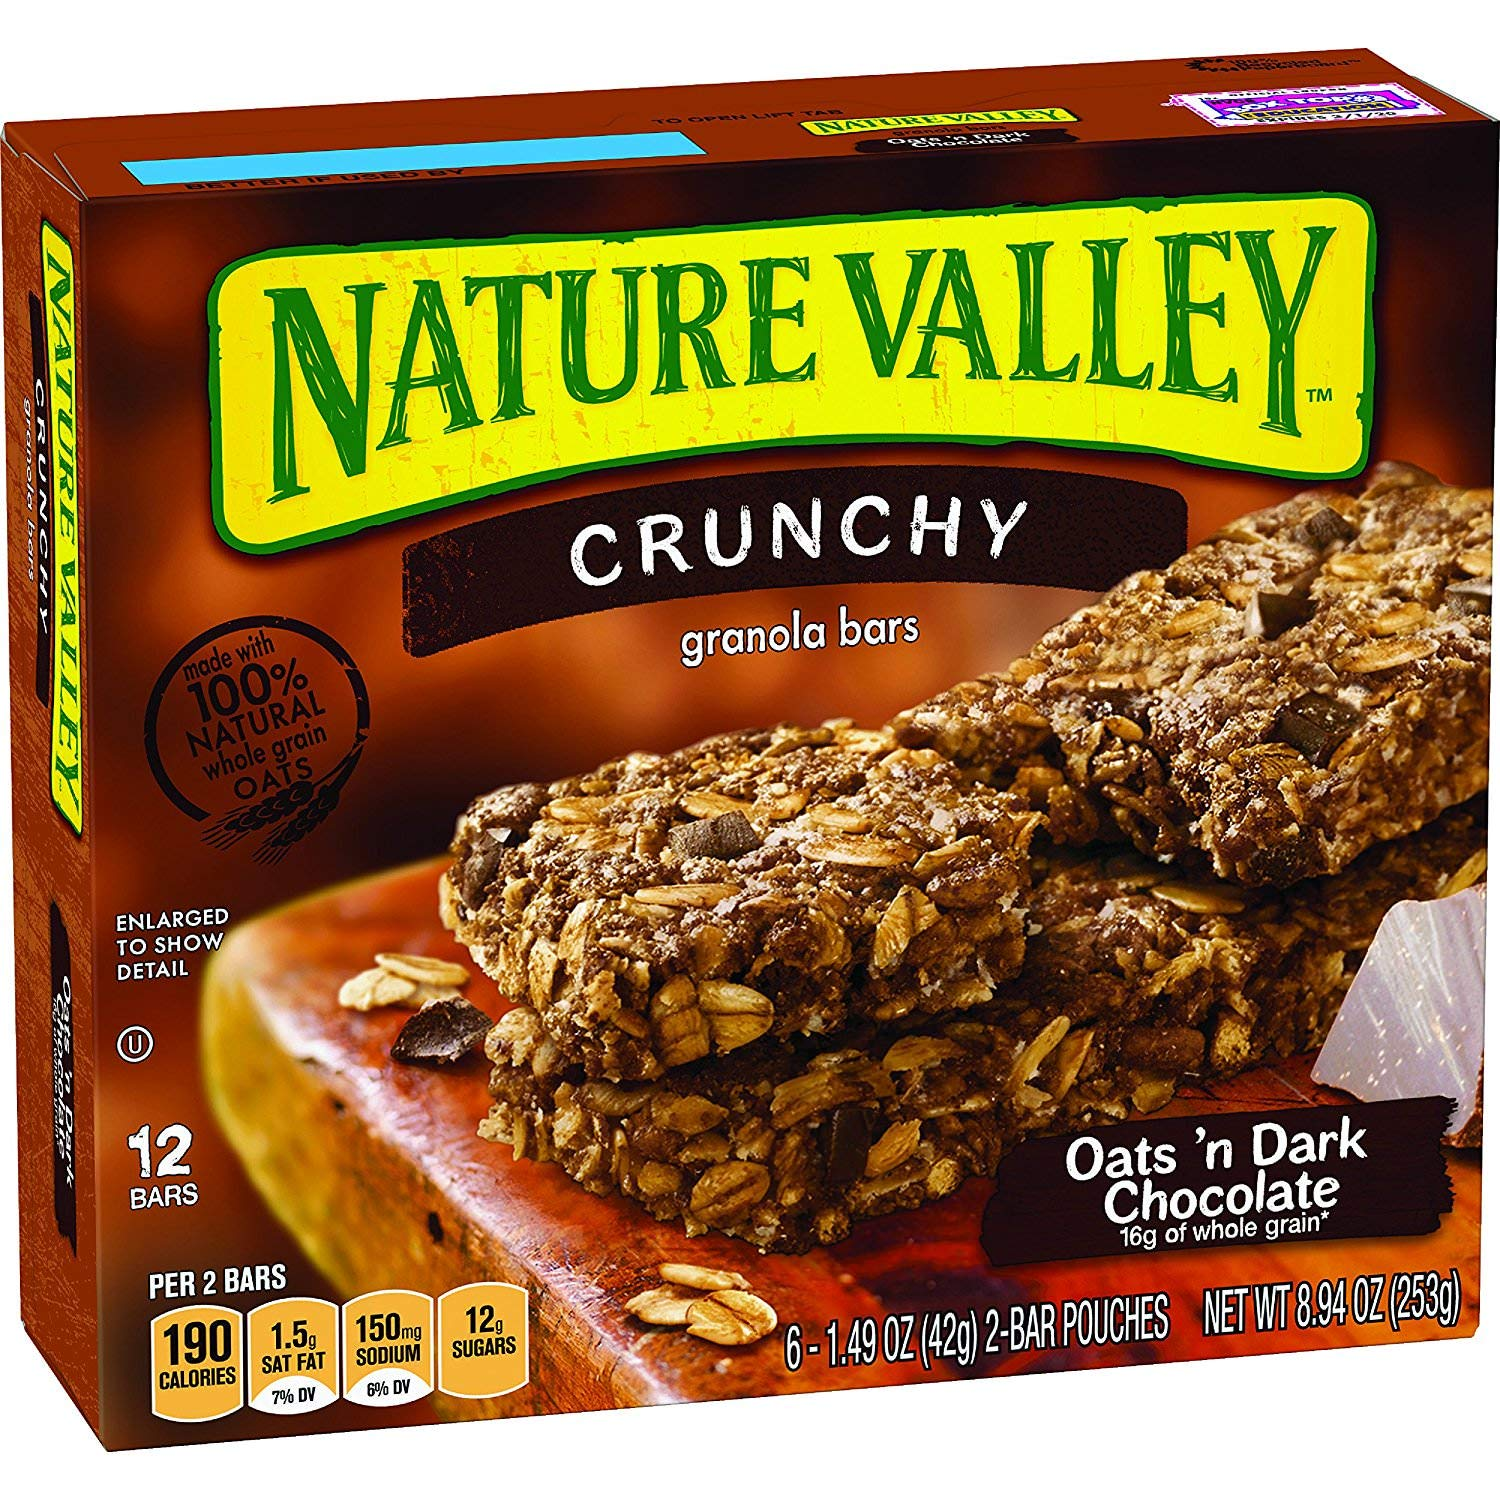 Nature Valley Granola Bars, Crunchy, Oats and Dark Chocolate, 12 Bars (30 Boxes)